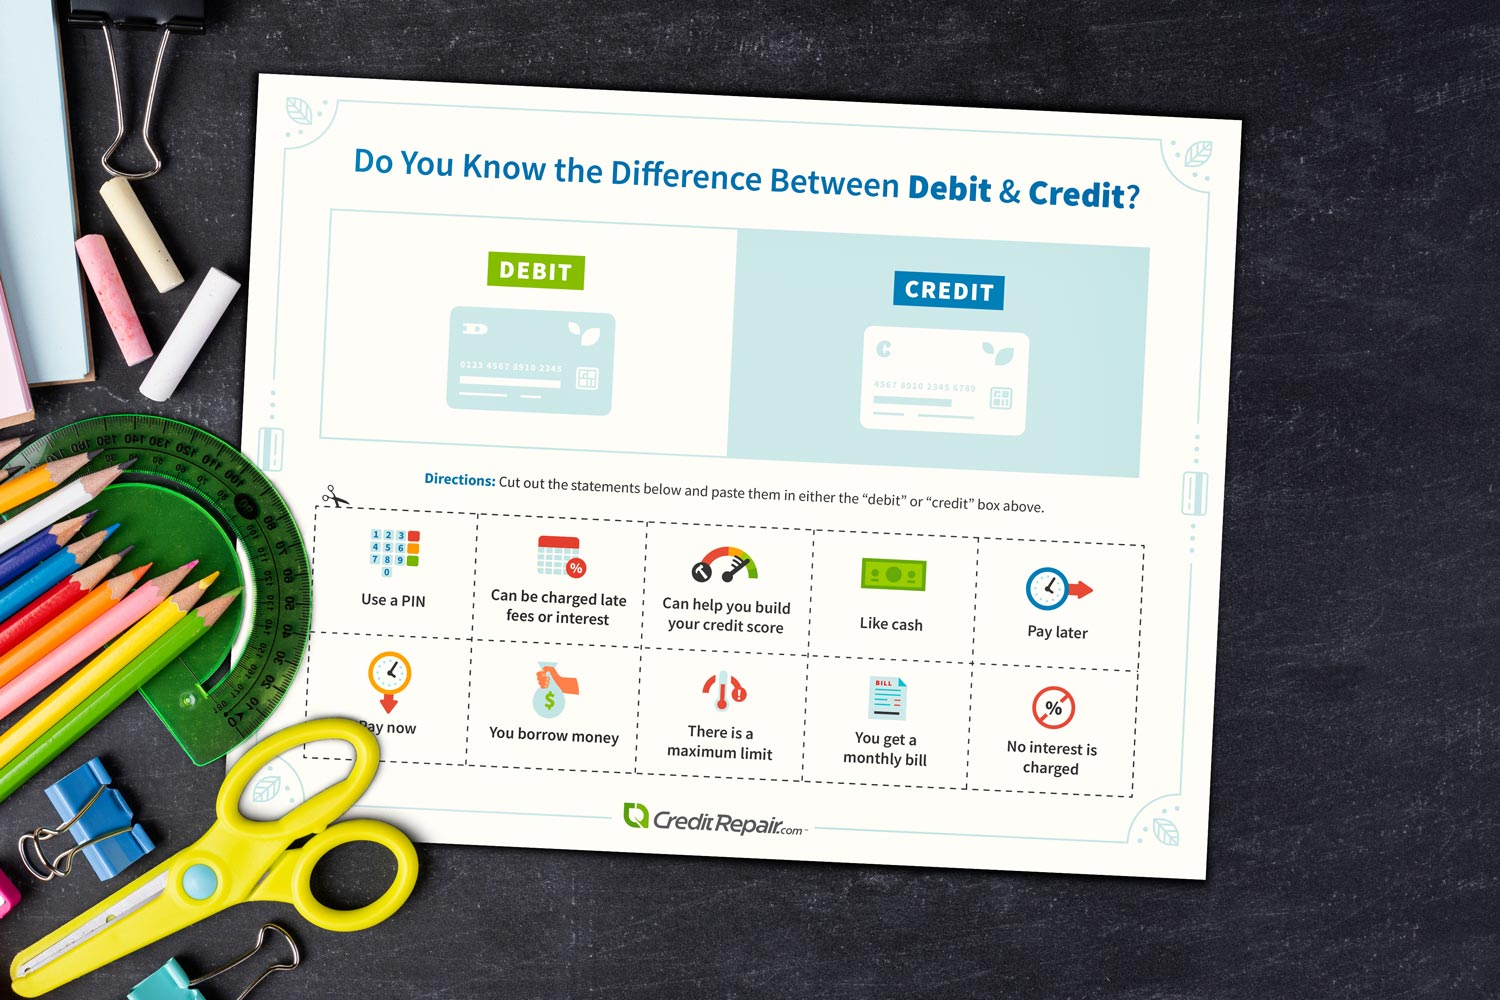 Difference between debit and credit printable chart.